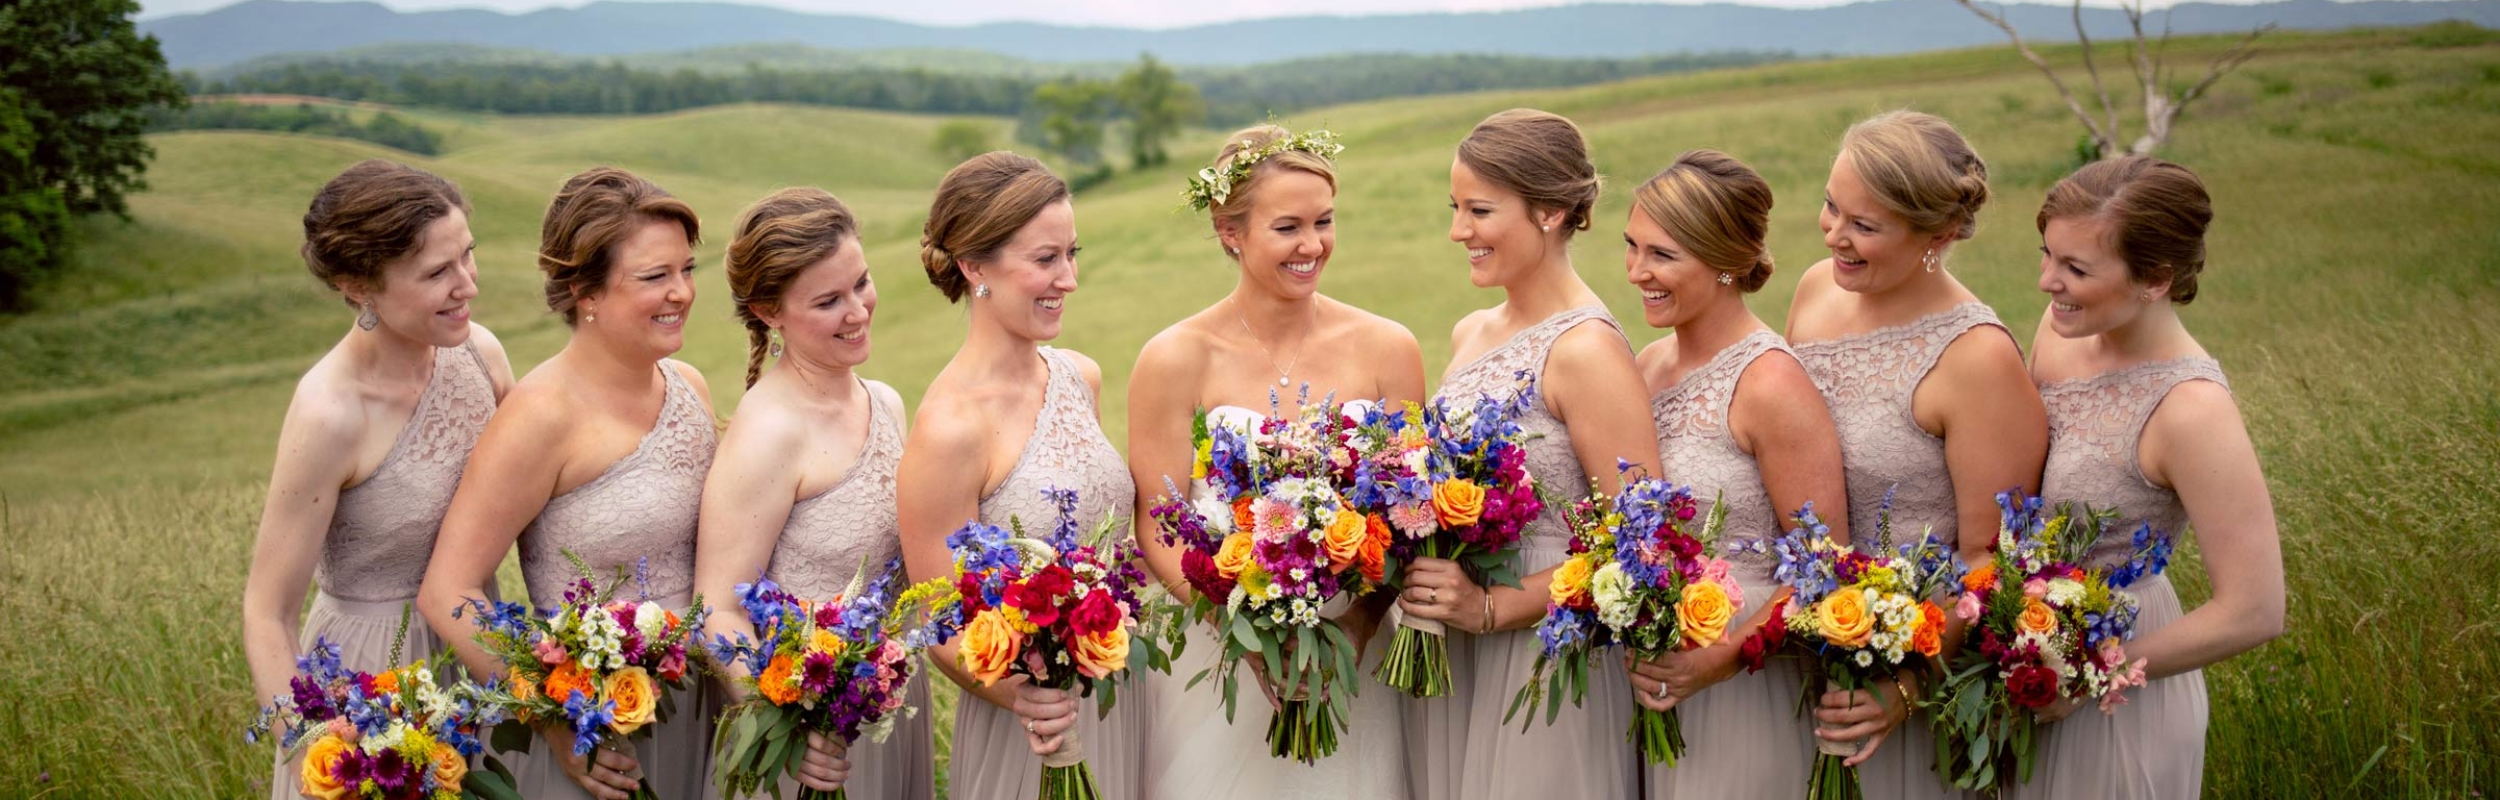 flower-vintage-bright-bridesmaids